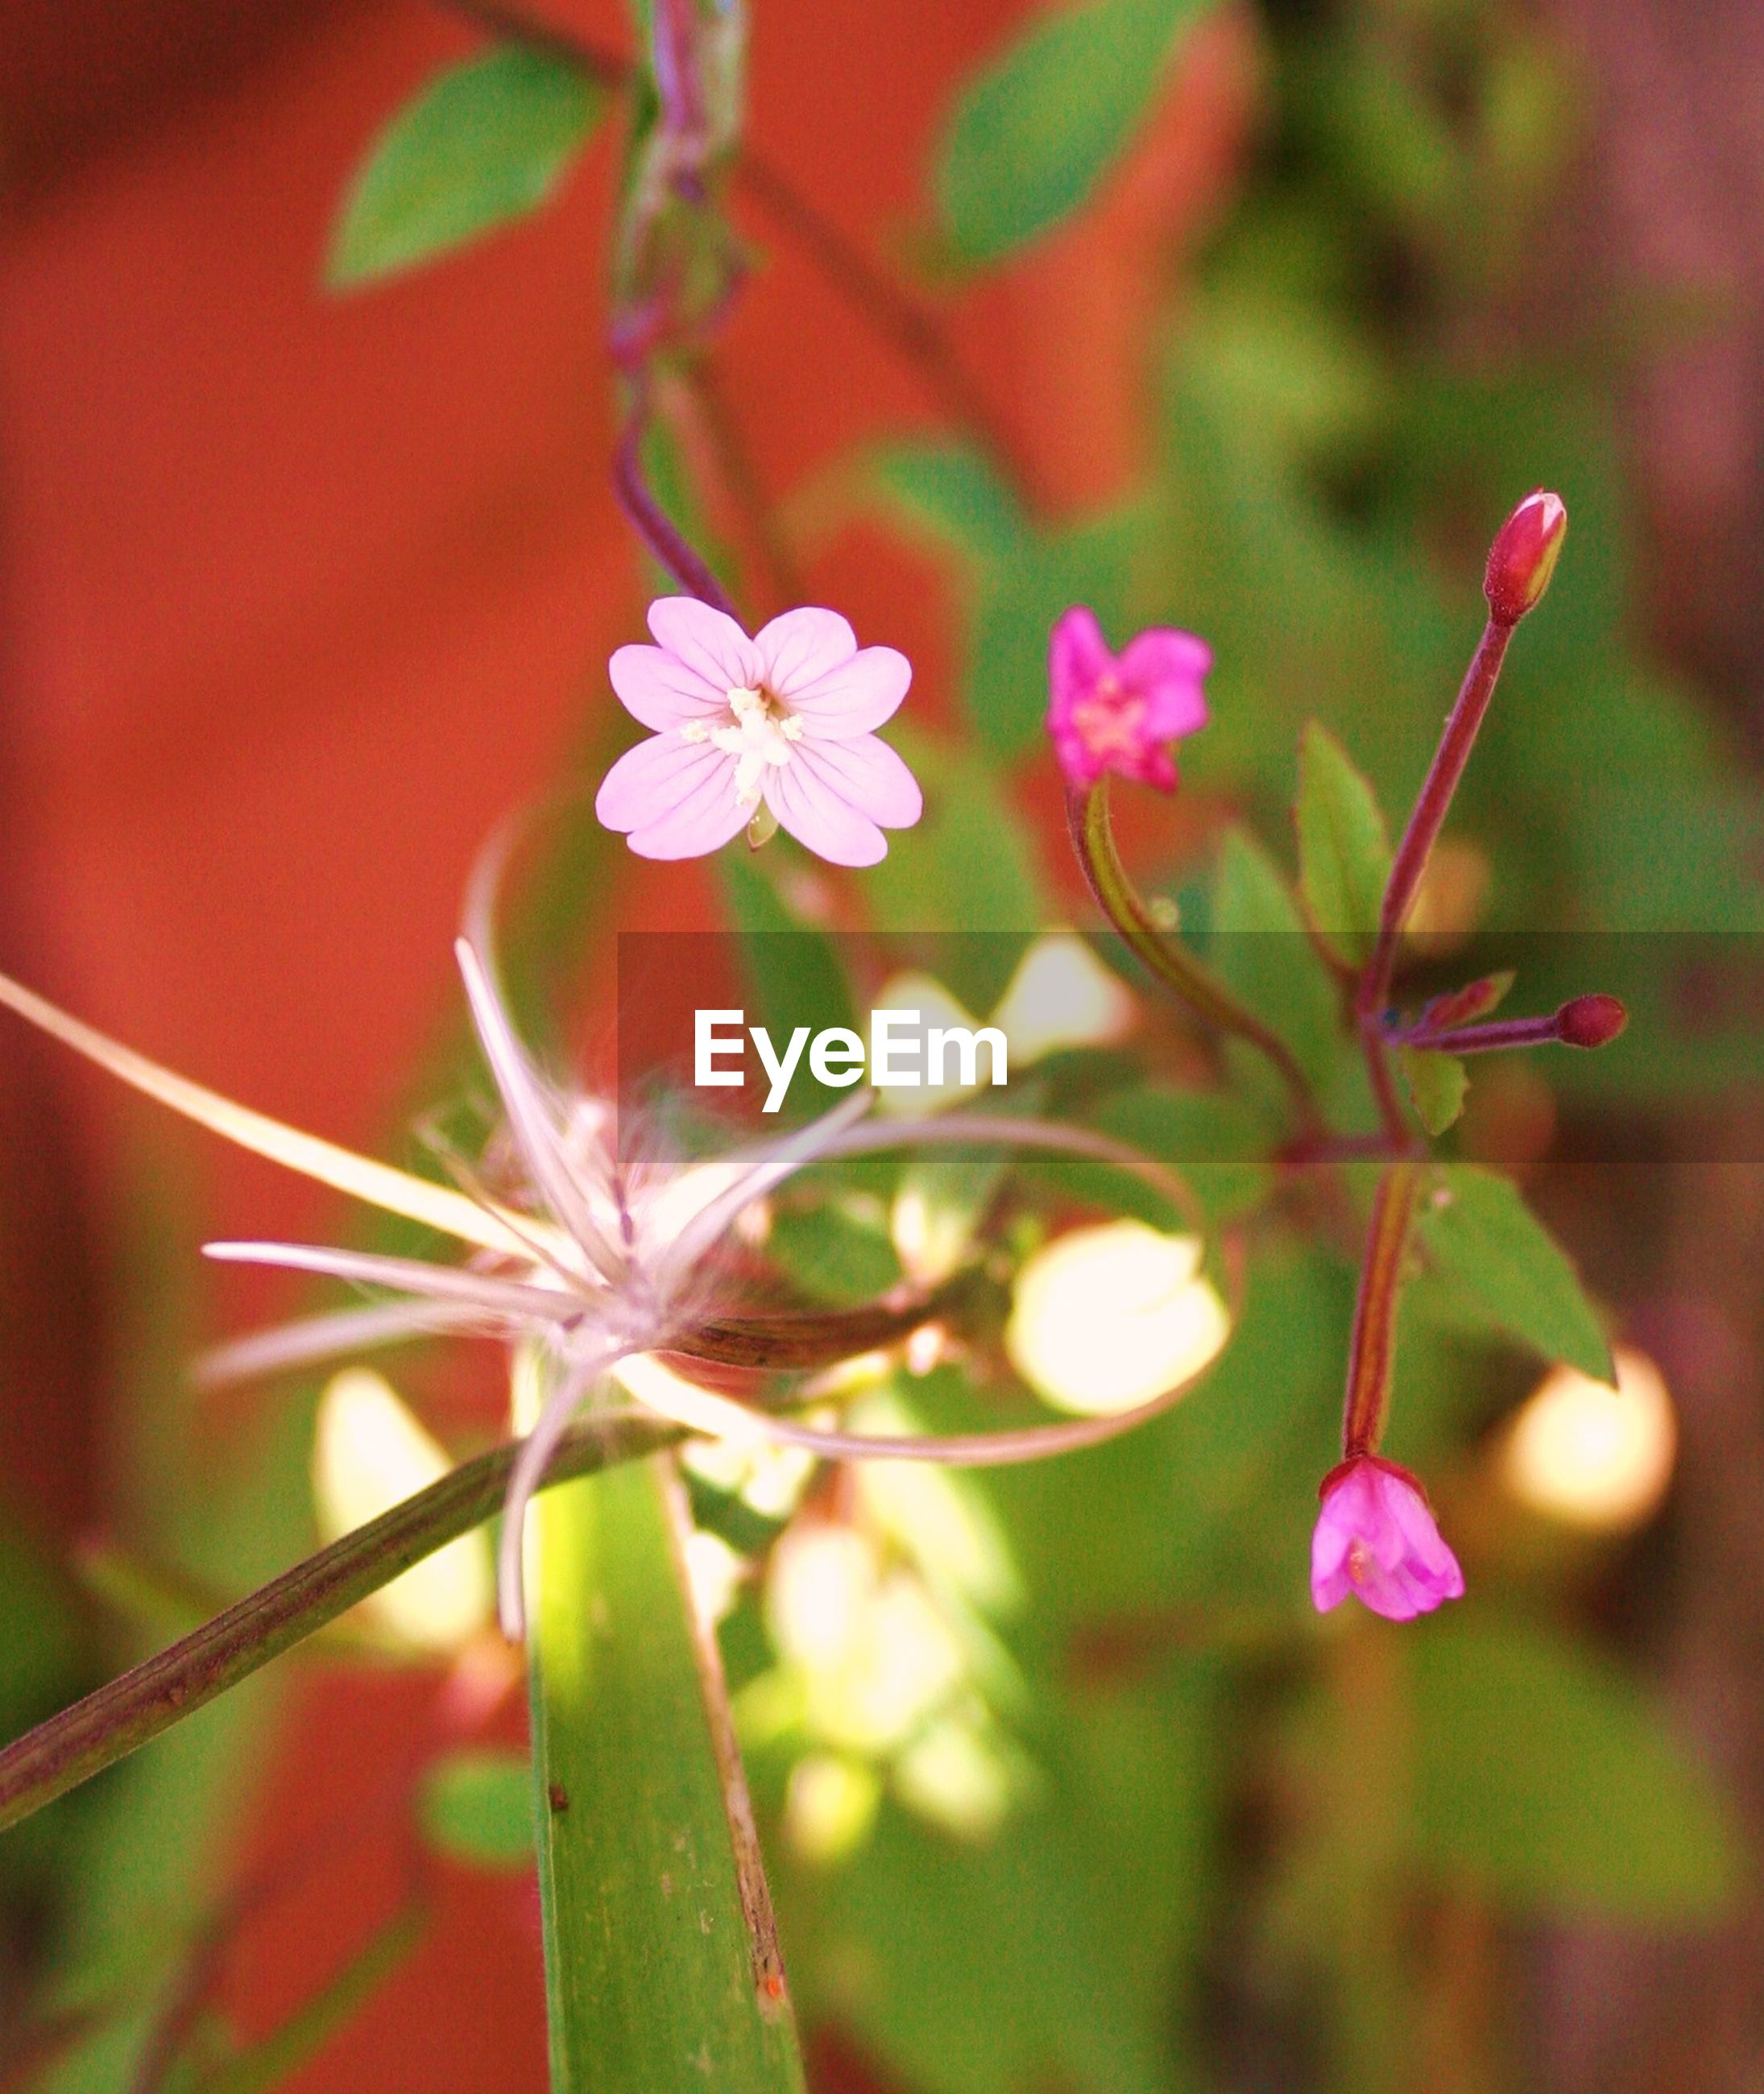 Pink flowers growing outdoors